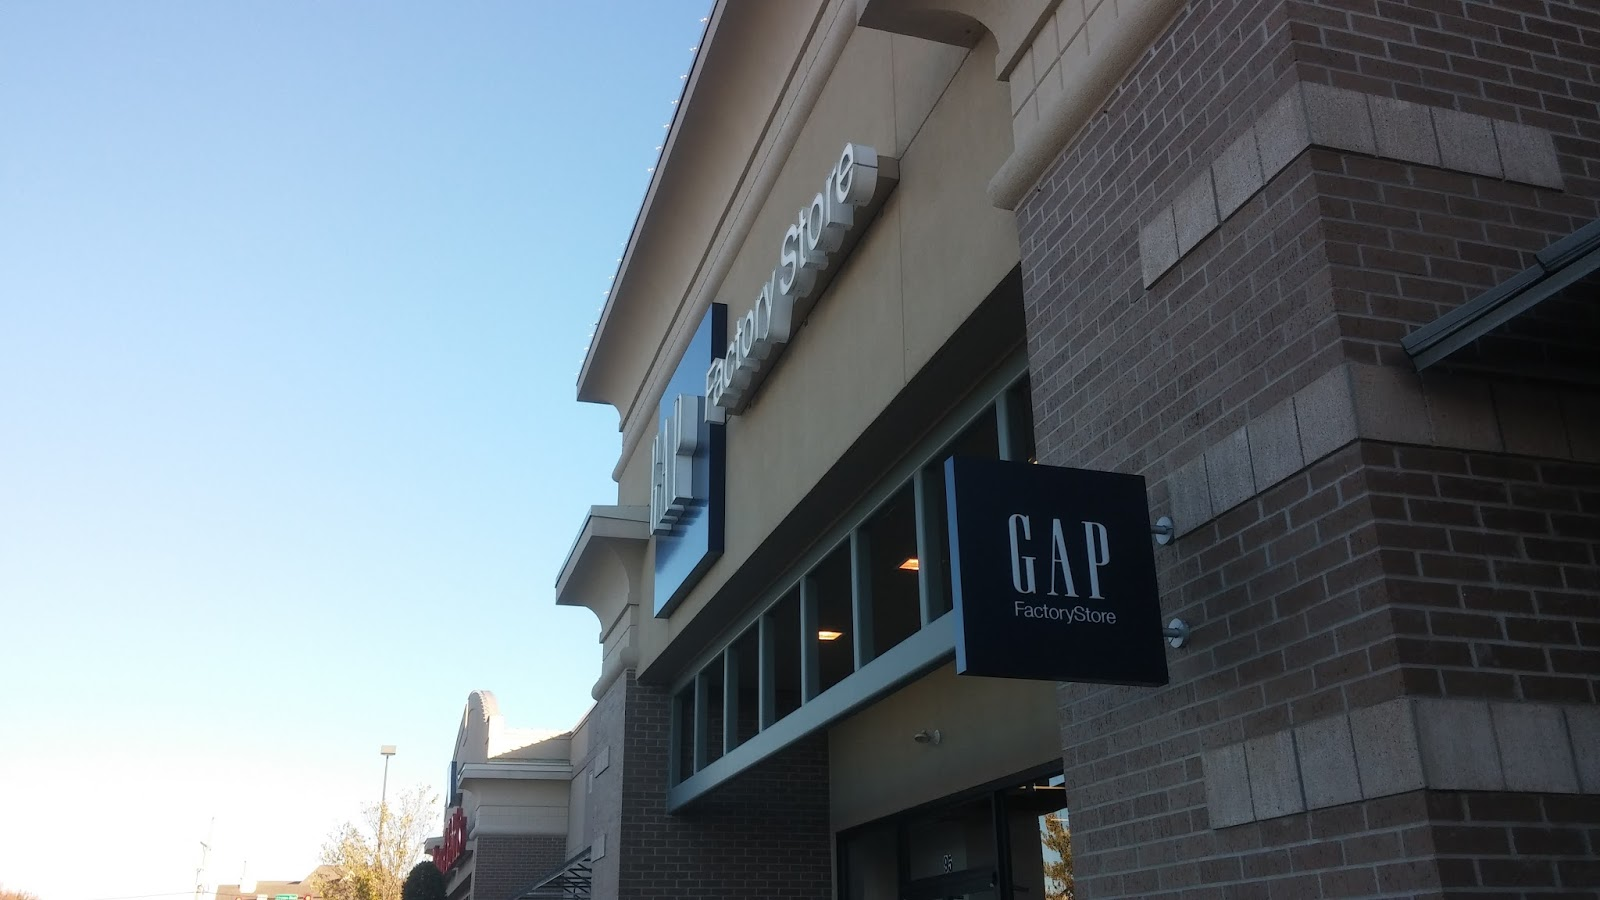 the mid south retail blog south lake centre southaven ms you recall that gap has a factorystore at tanger outlets southaven which is just down the road that road sign pictured at the top of the post is at